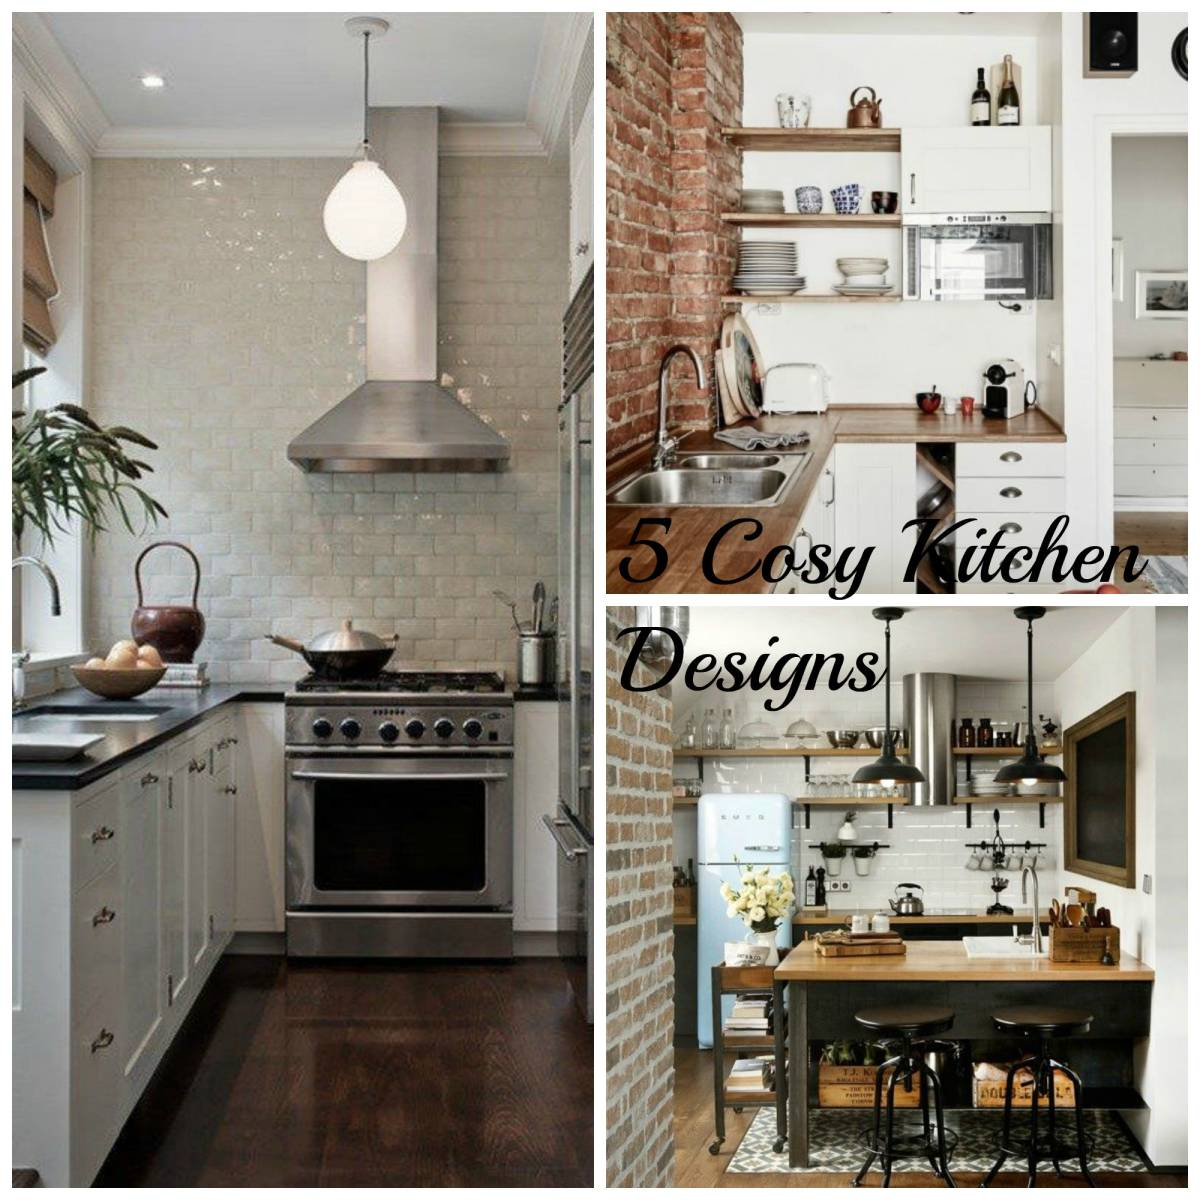 5 Small Kitchen Designs-Inspired Space